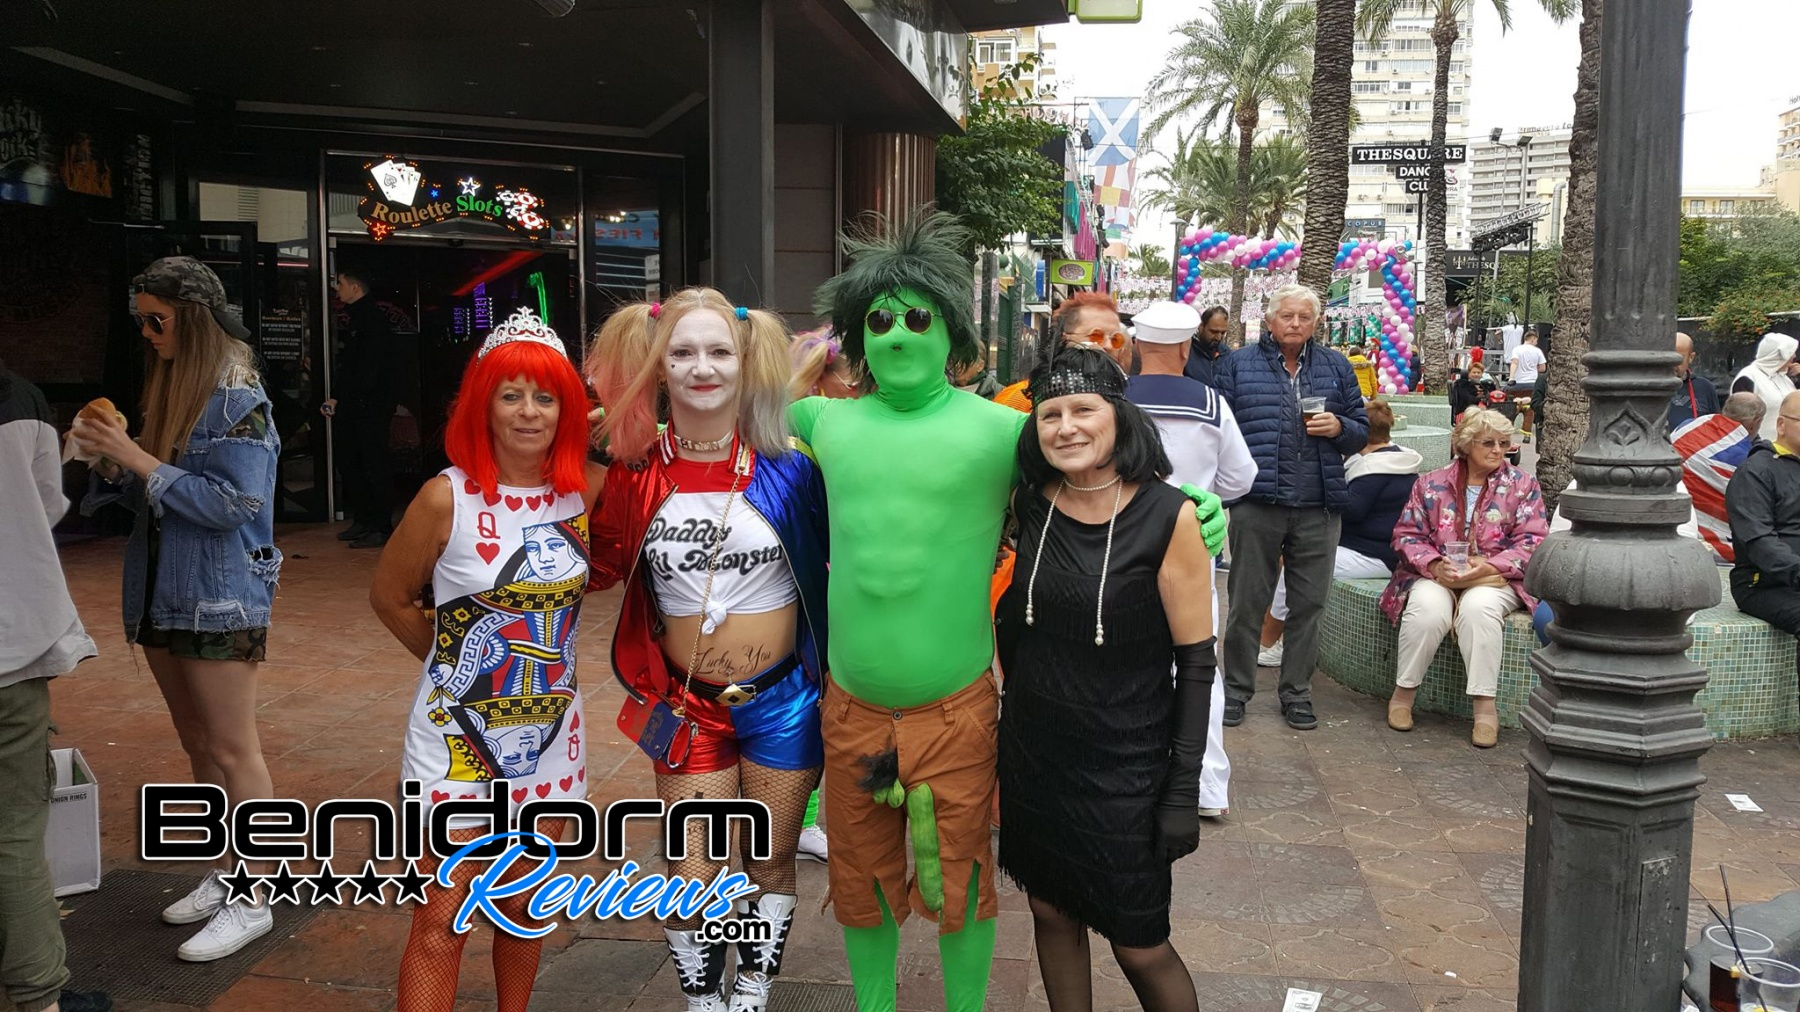 Benidorm-Fiestas-2019-Fancy-Dress-194